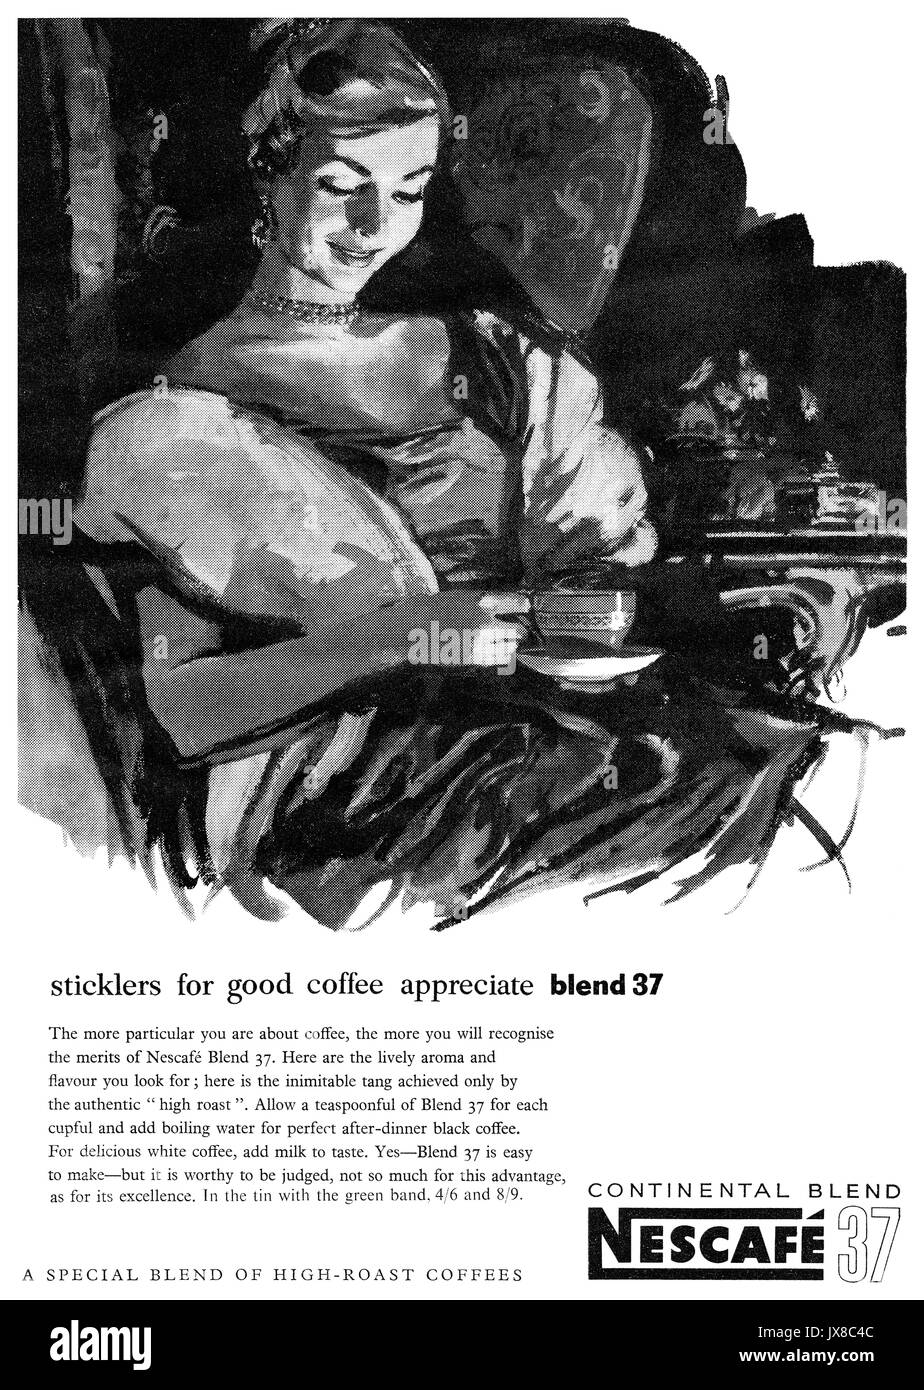 1959 British advertisement for Nescafé Blend 37 coffee. - Stock Image